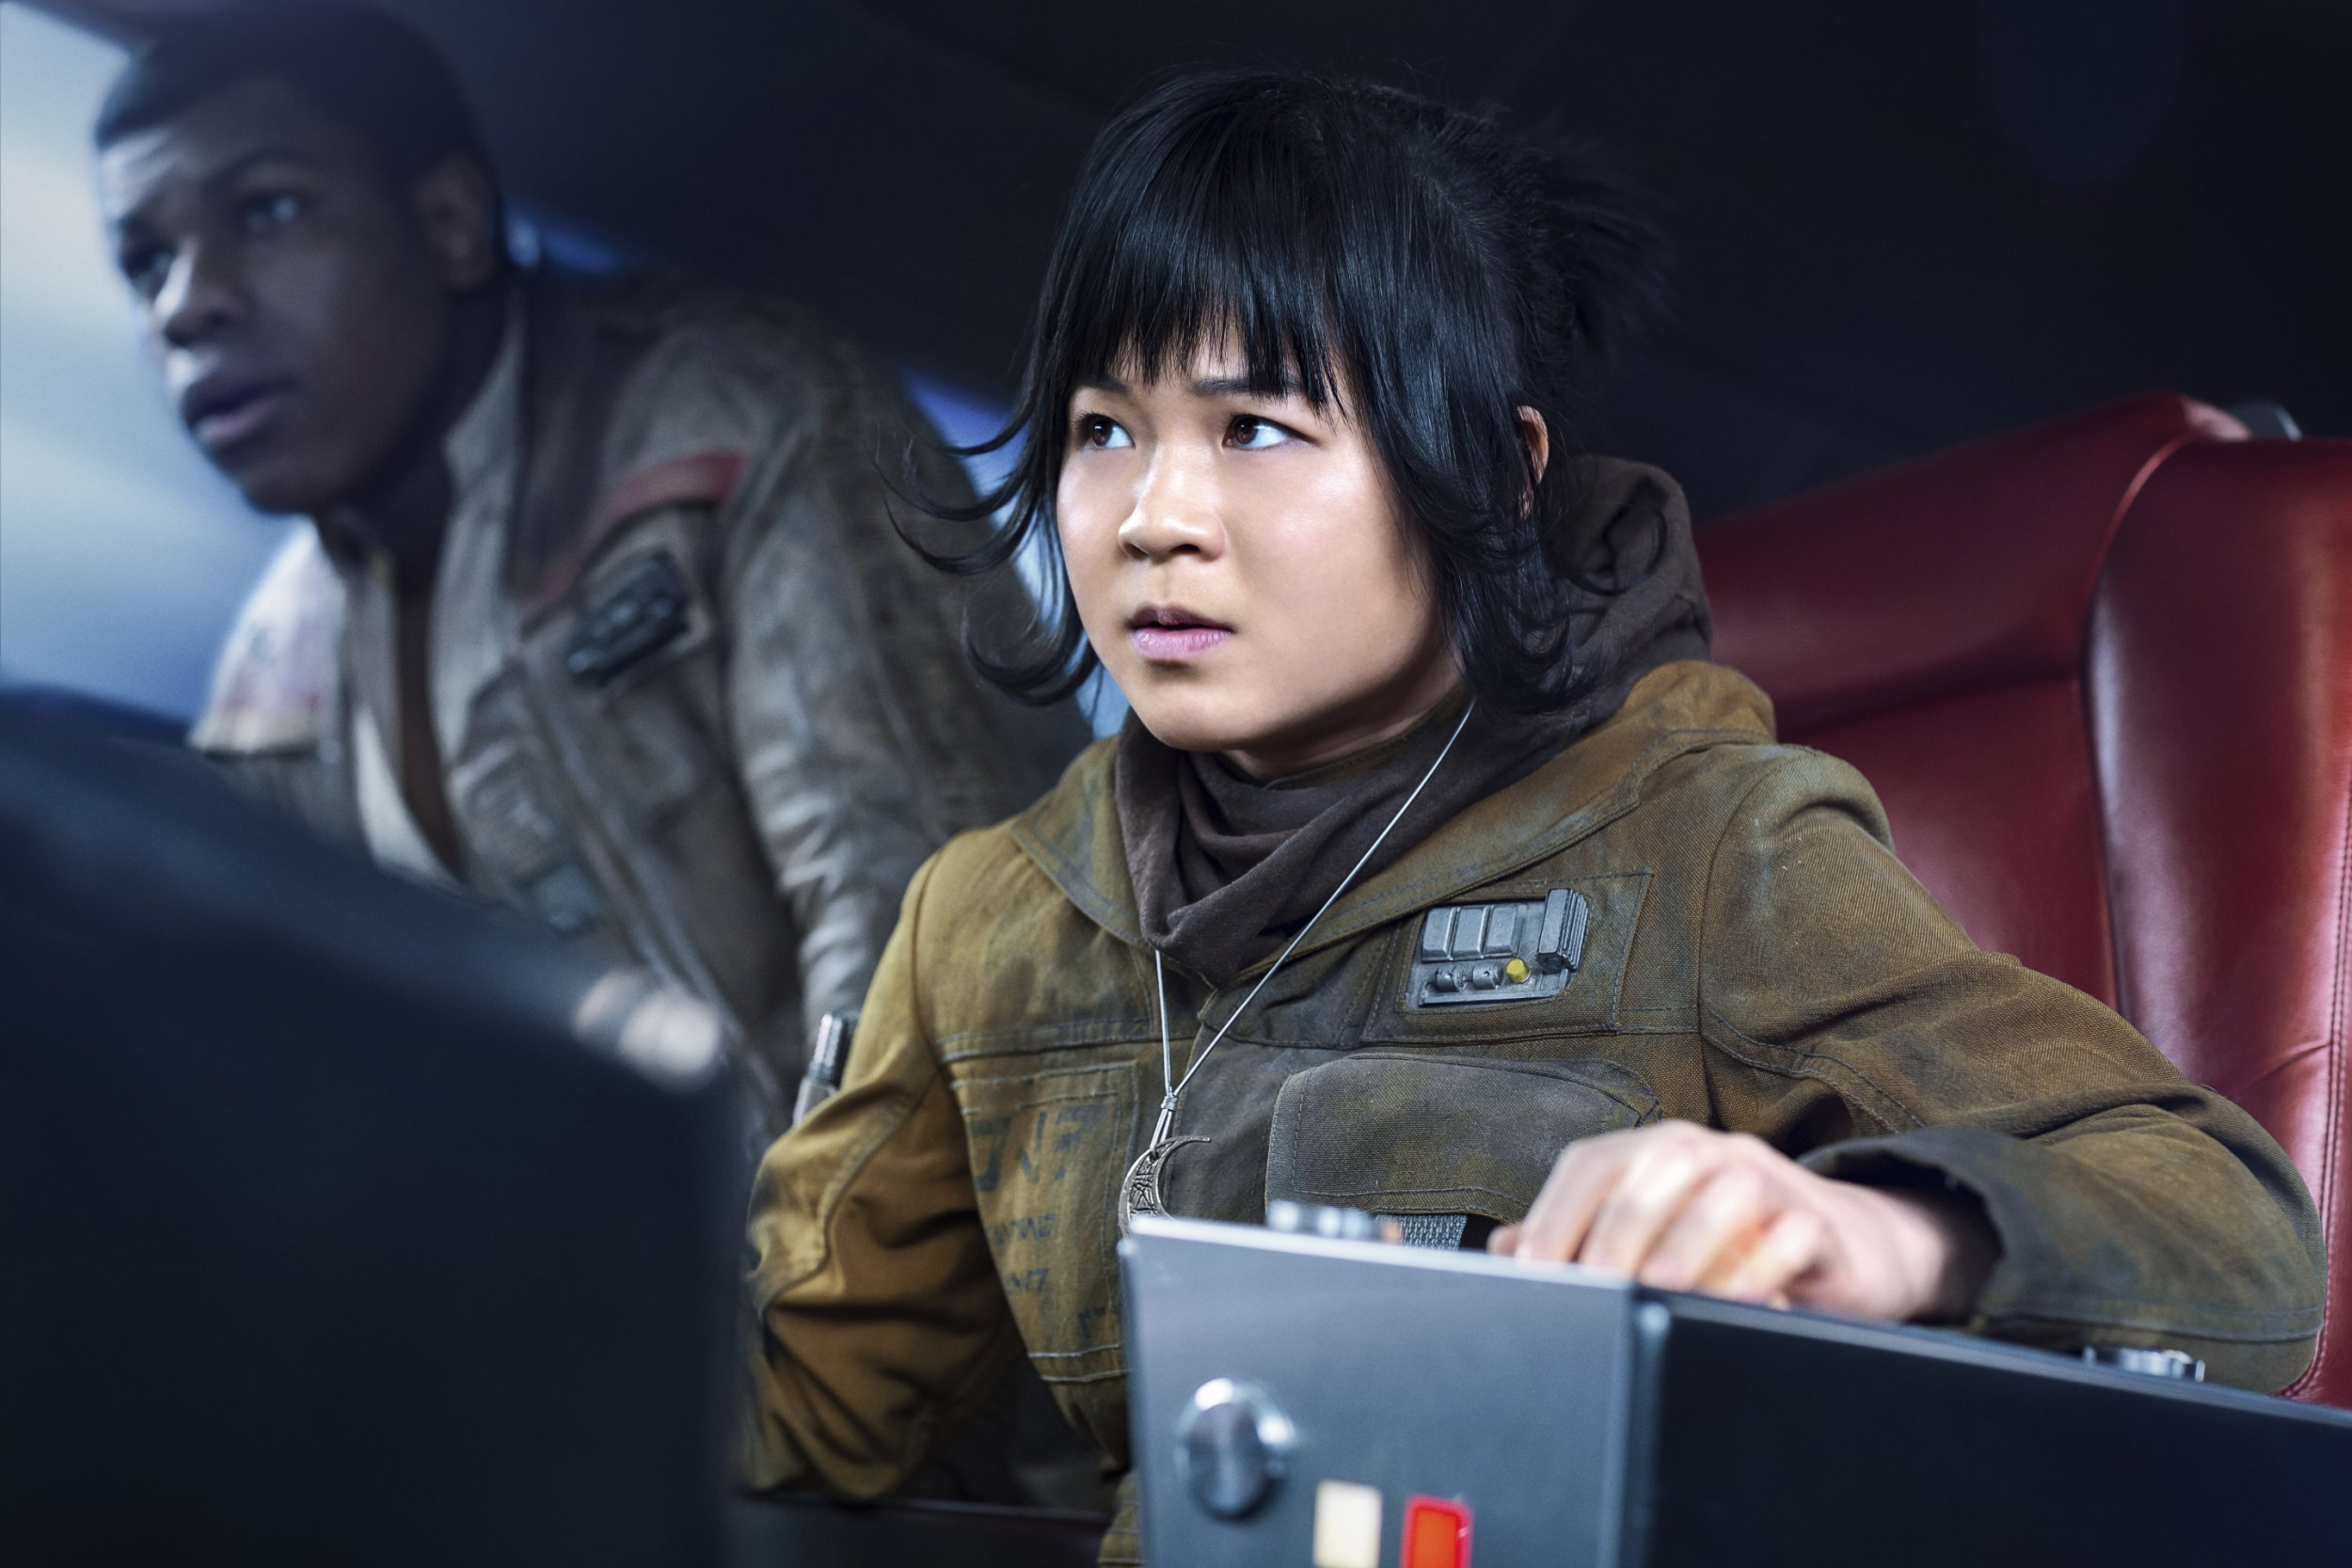 """This image released by Lucasfilm shows Kelly Marie Tran as Rose and John Boyega as Finn, left, in """"Star Wars: The Last Jedi,"""" in theaters on Dec. 15. (Jonathan Olley/Lucasfilm via AP)"""